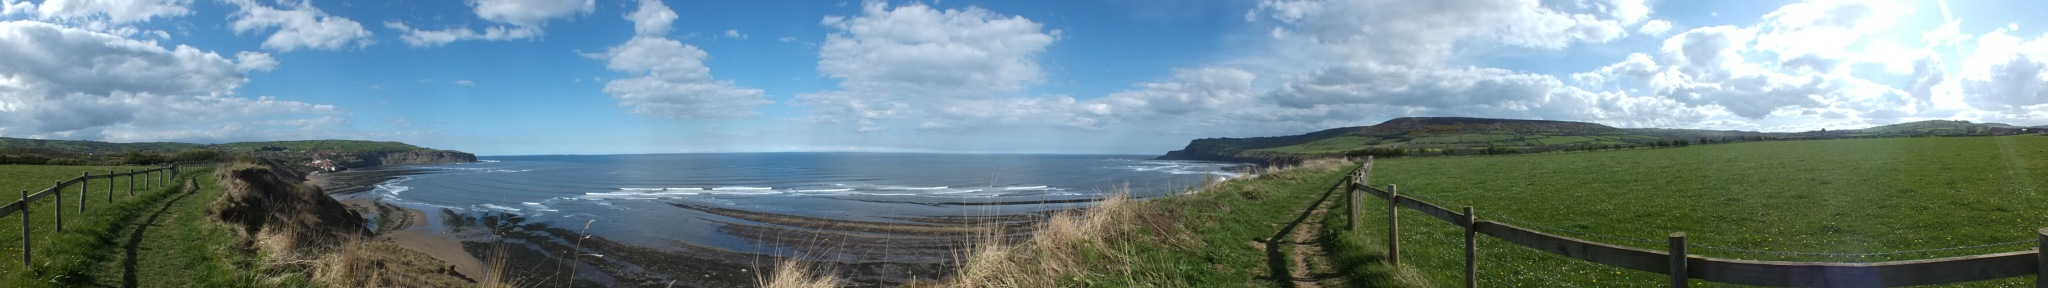 Robin Hoods Bay - Yorkshire Panoramic by Chris Dale